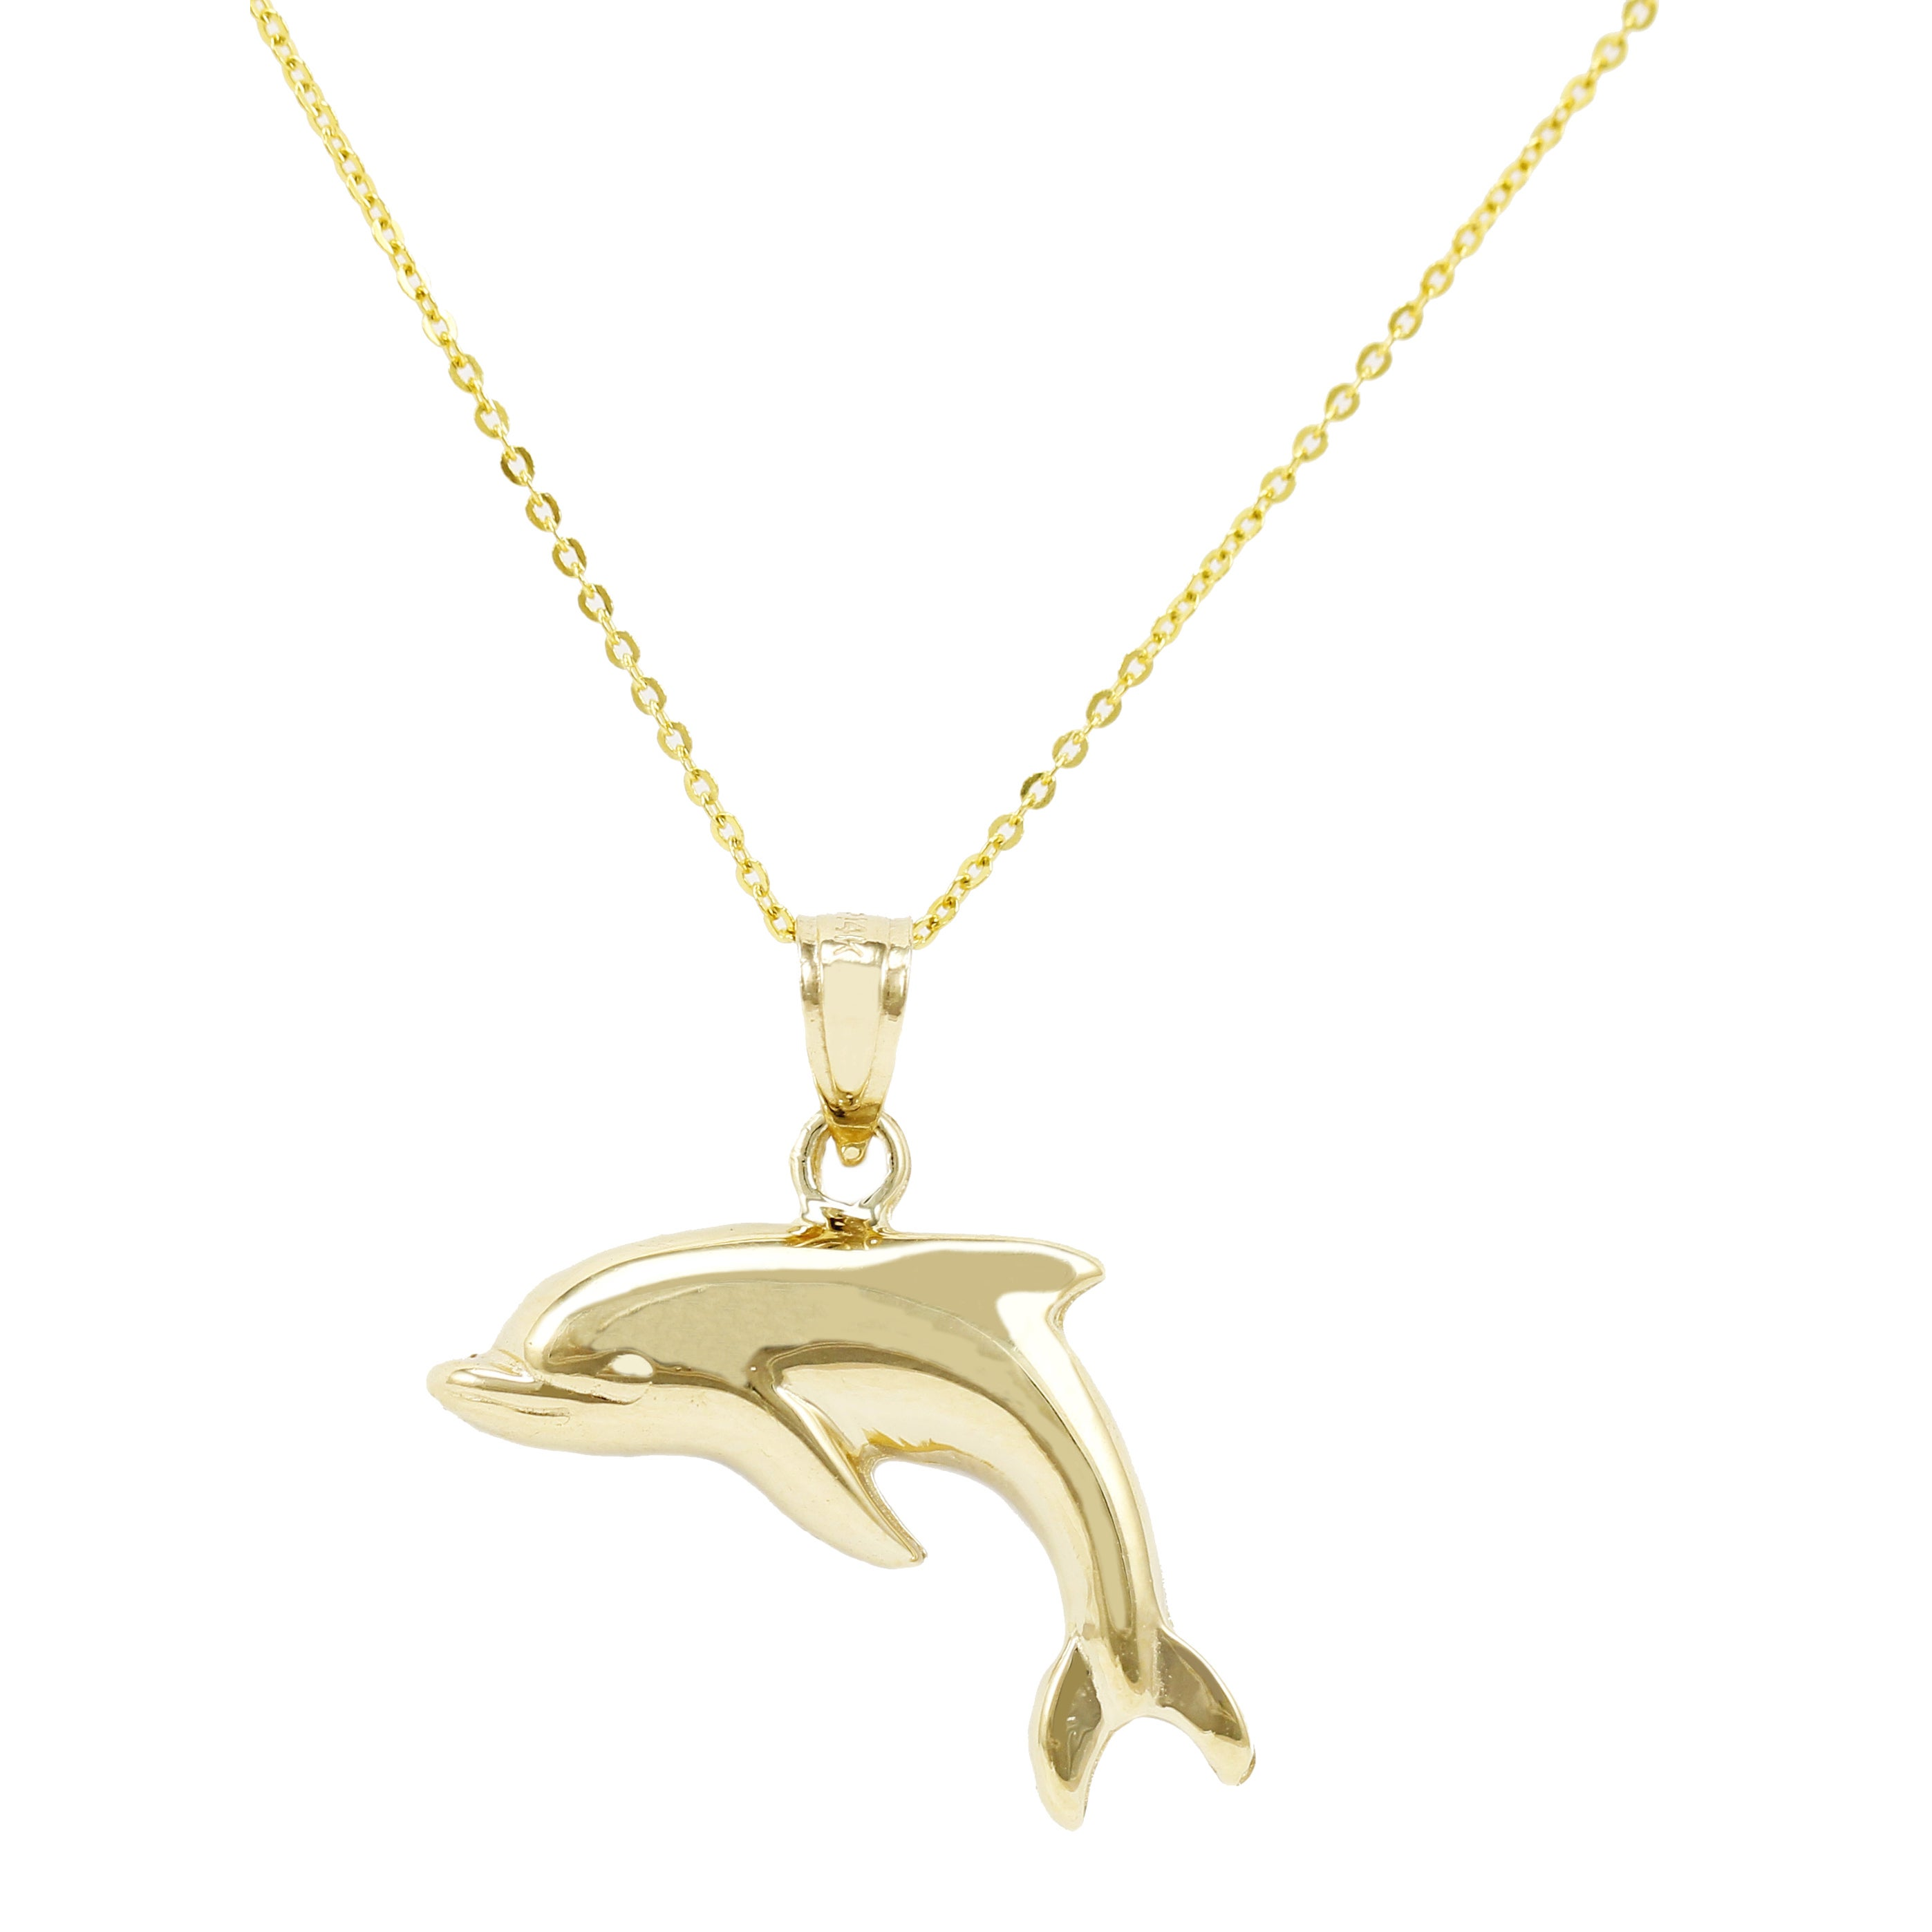 stone stop pendant shop product products image sterling necklace silver gear dolphin